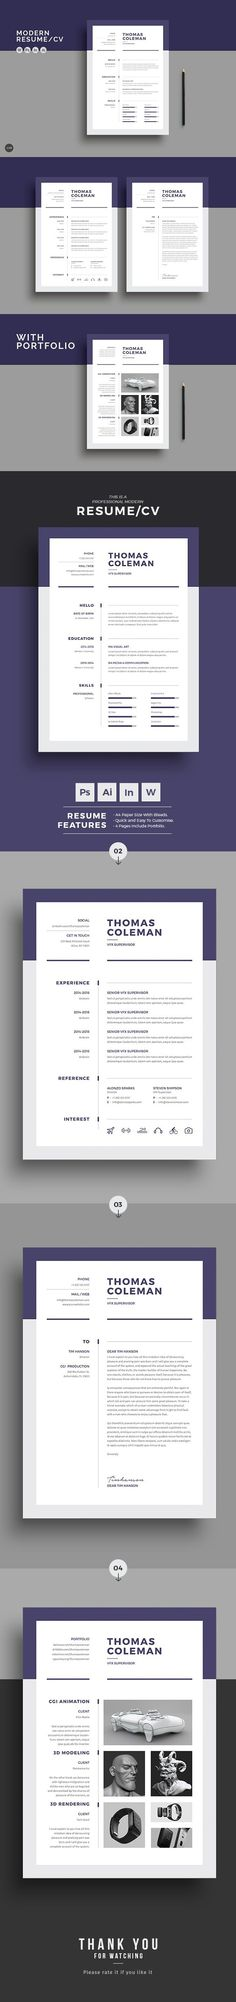 Good Objective Statements For Resumes Resume Template For Ms Word  Resume Templates Templates And Resume Referee Resume with Fashion Resumes Pdf Resume Templates Whats A Cover Letter For A Resume Excel